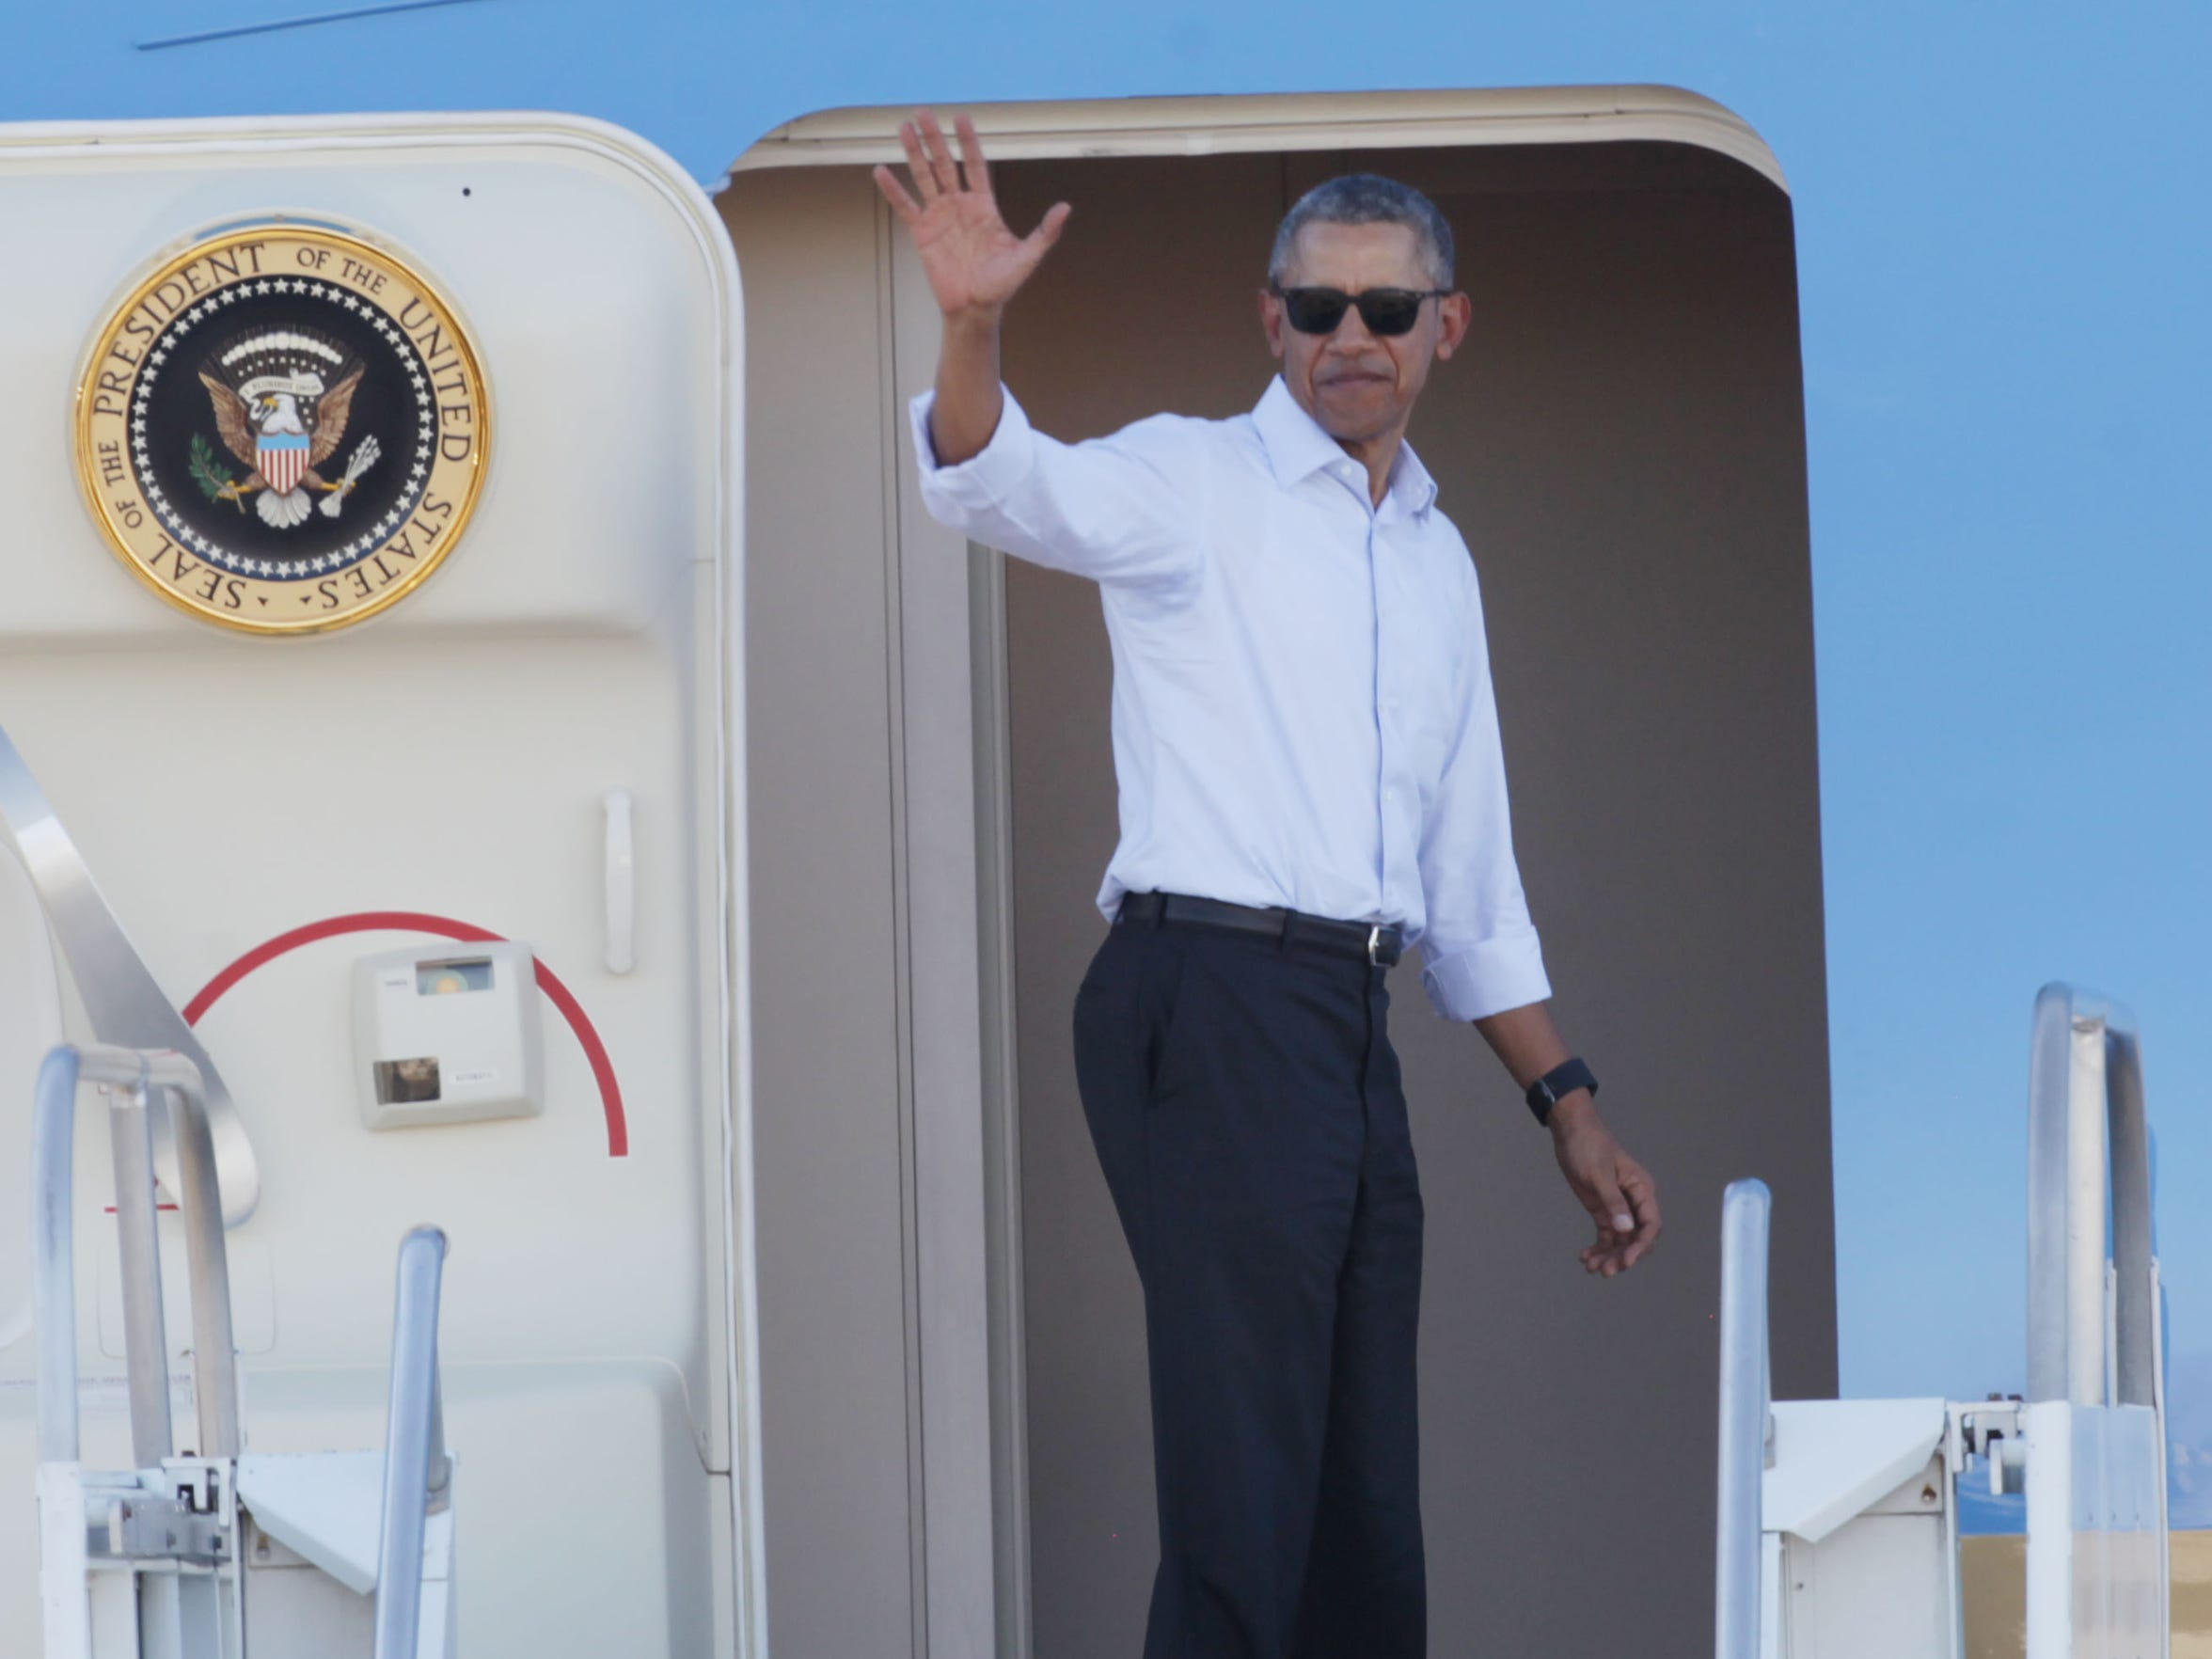 U.S. President Barack Obama departs Palm Springs International Airport on February 16, 2016.